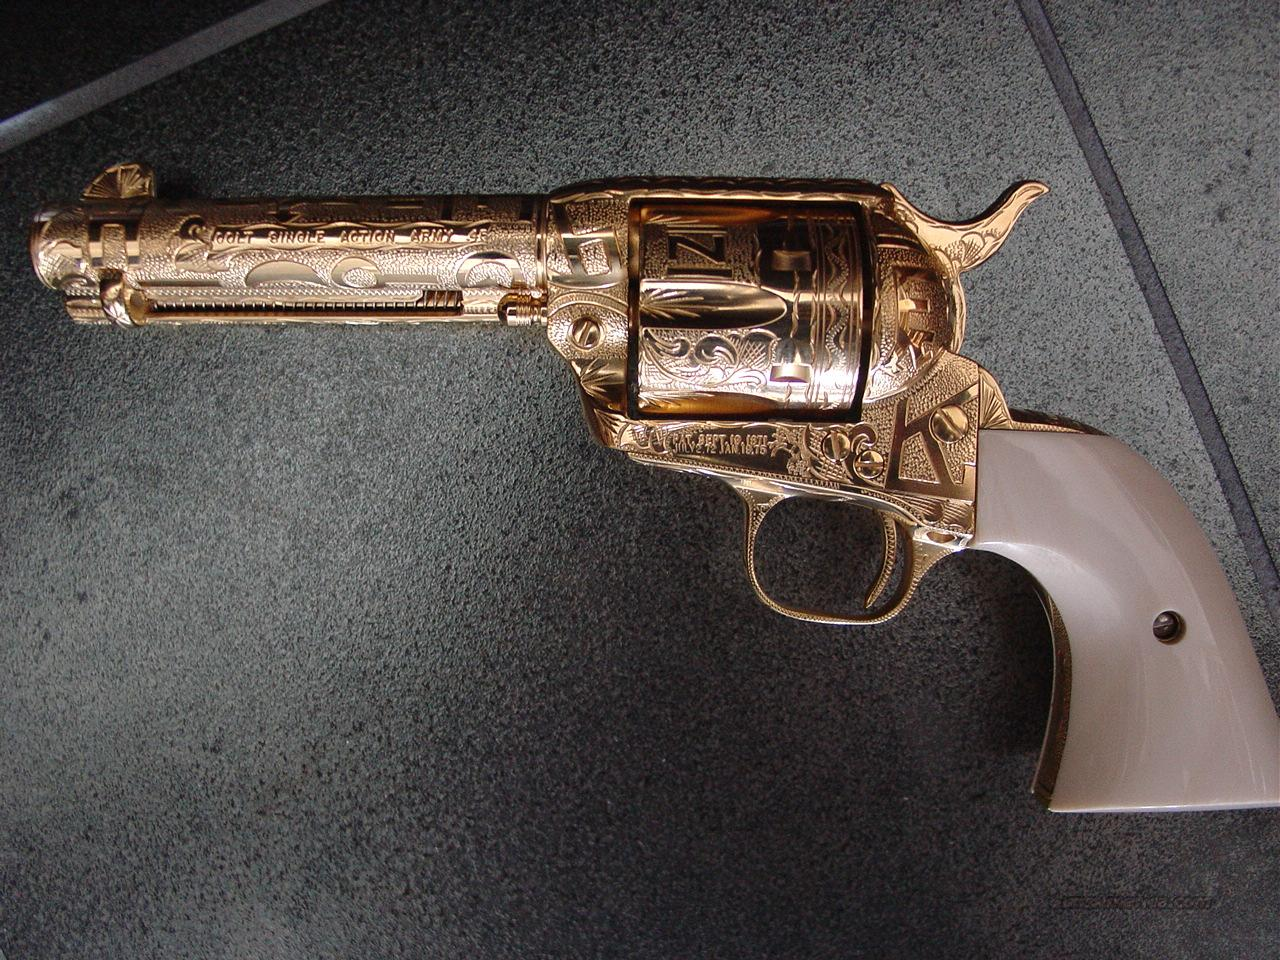 "Colt SAA,Jeff Flannery Cattlebrand master engraved,real ivory grips,24K gold plated,45LC,4 3/4""-3rd Gen. work of art-rare showpiece !!  Guns > Pistols > Colt Single Action Revolvers - 3rd Gen."